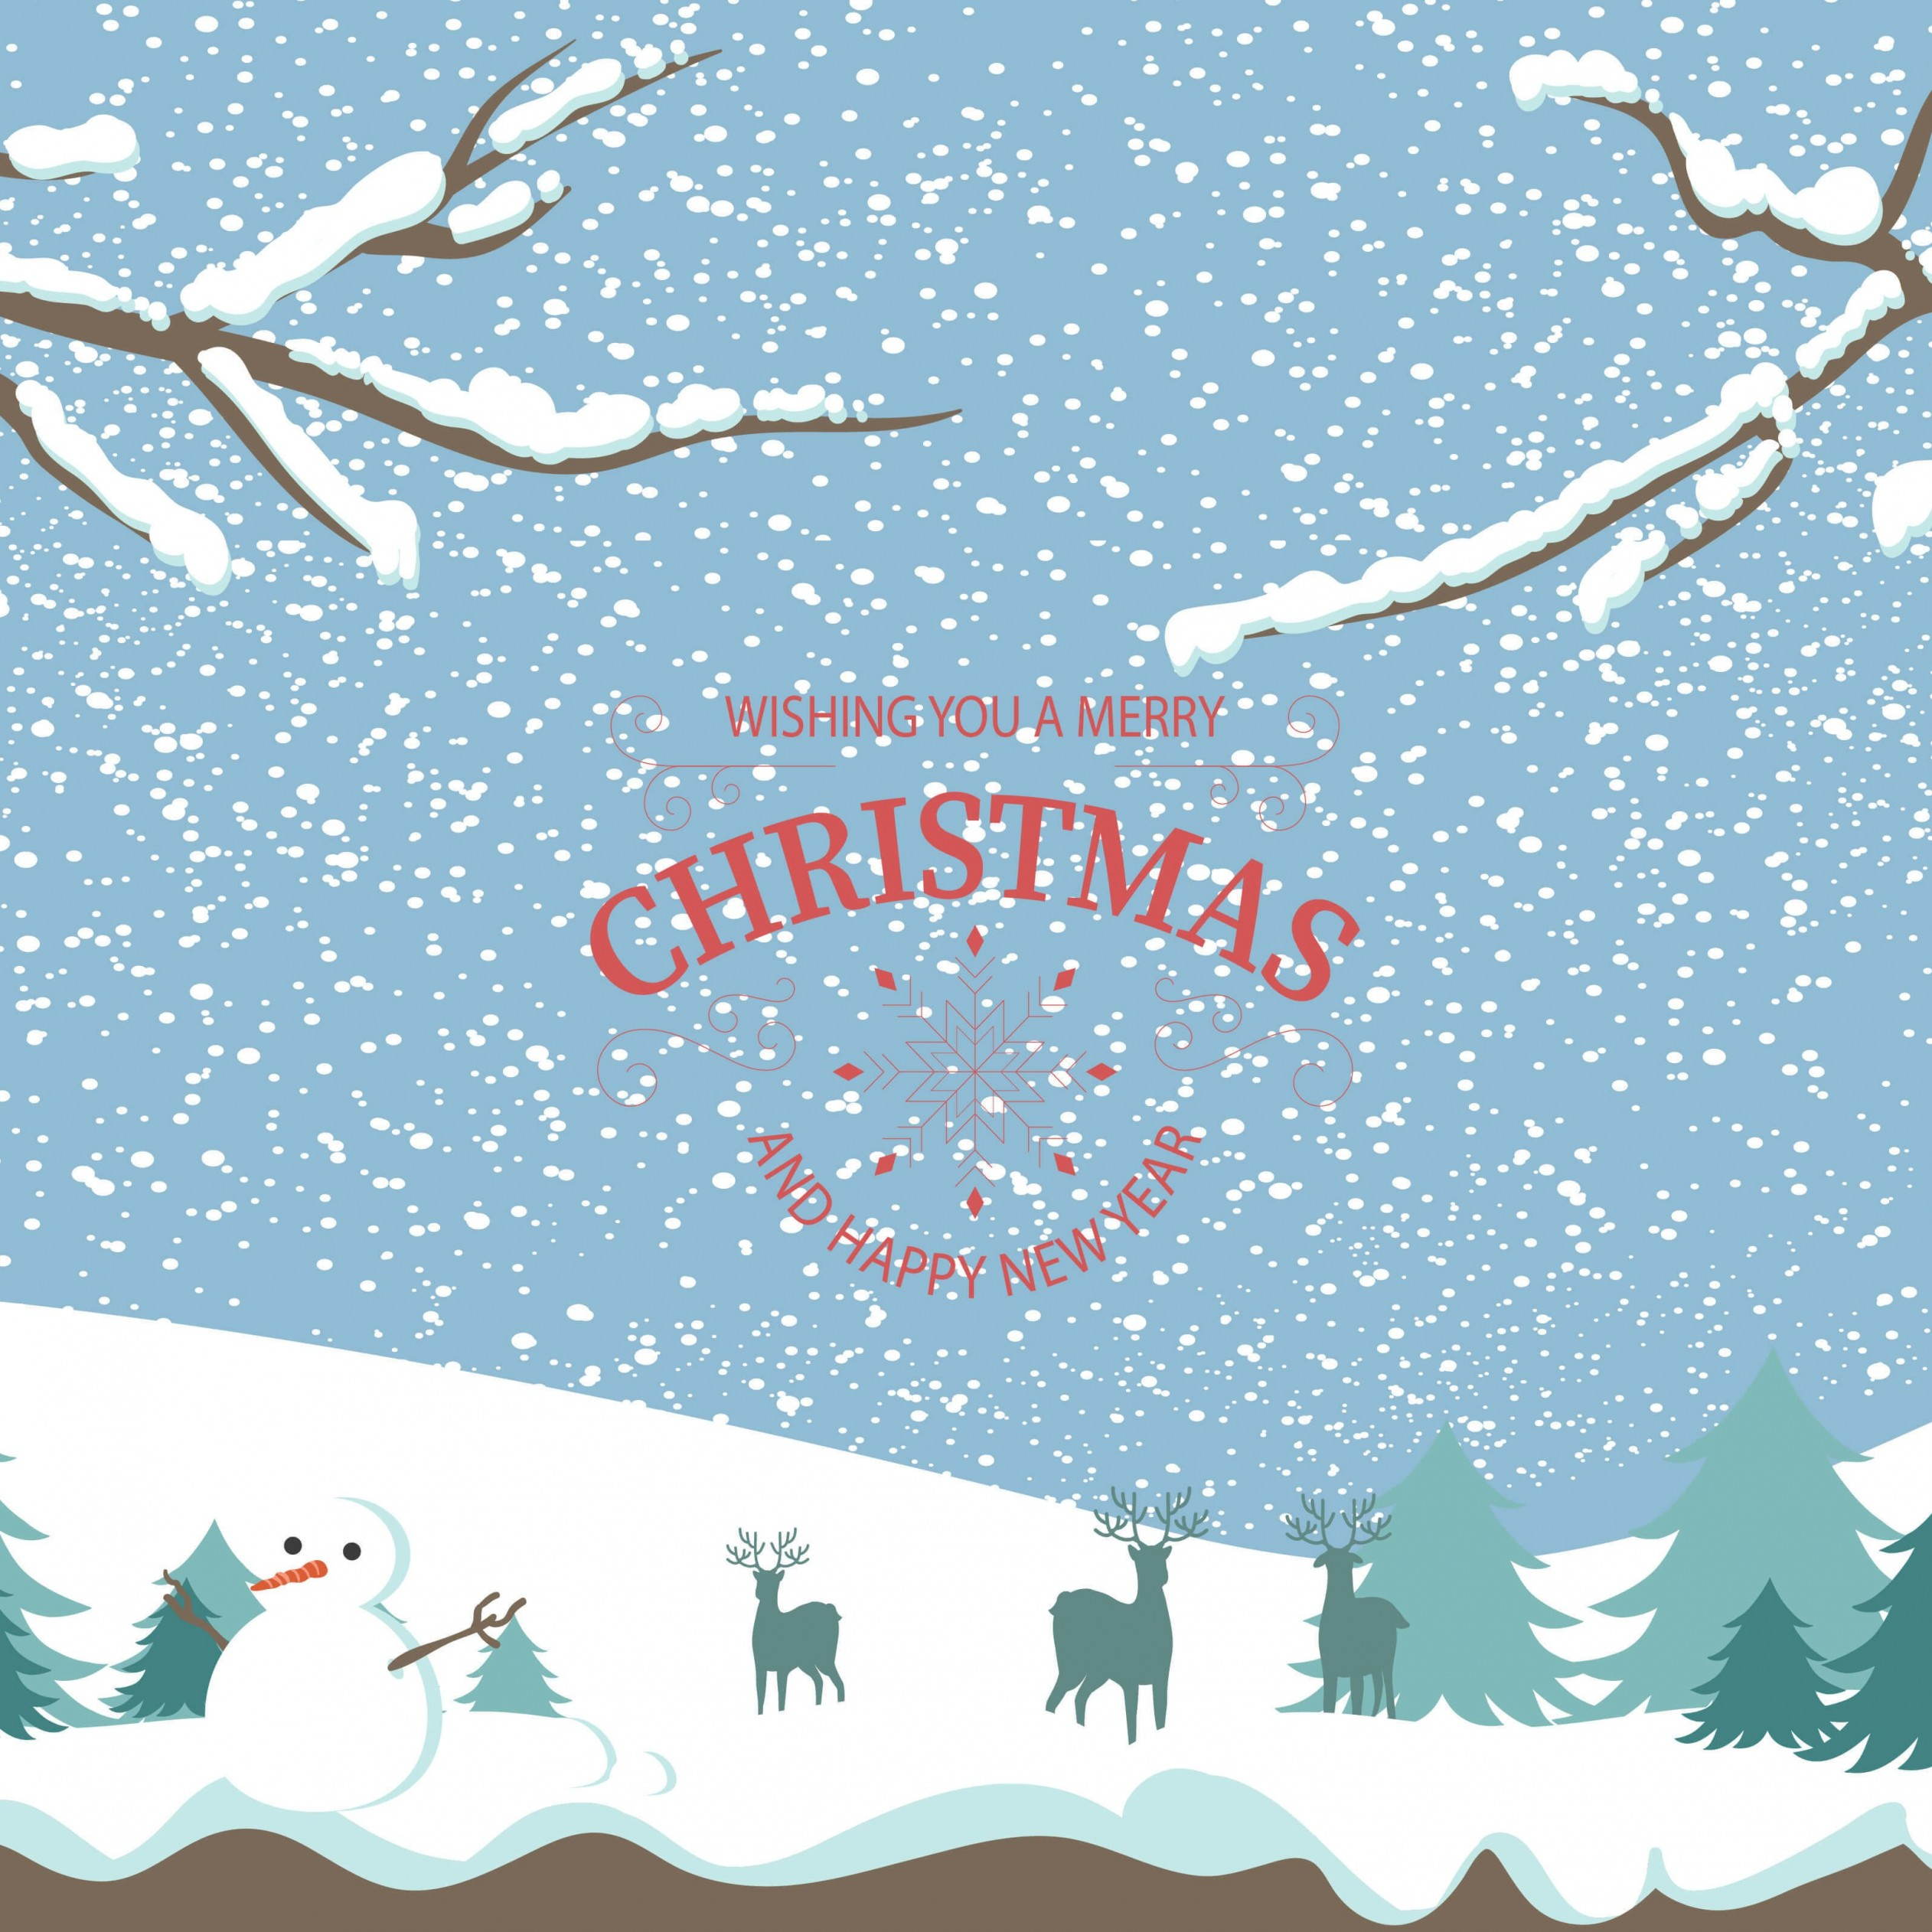 Download merry christmas illustration hd wallpaper for ipad 4